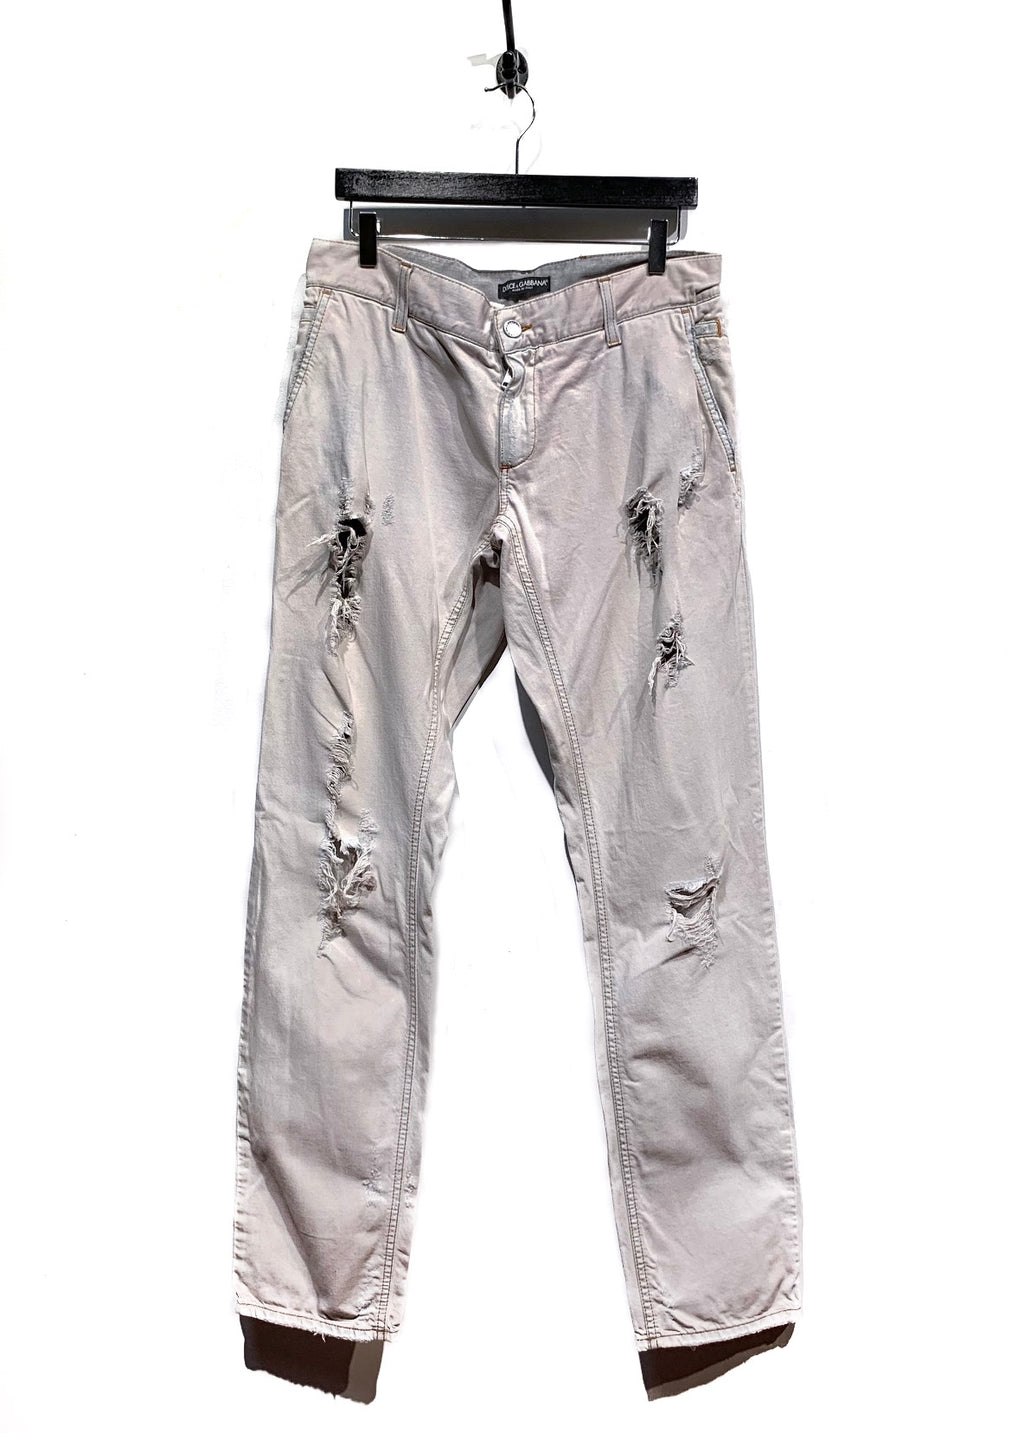 Dolce & Gabbana Light Grey Washed Out Destroyed Jeans